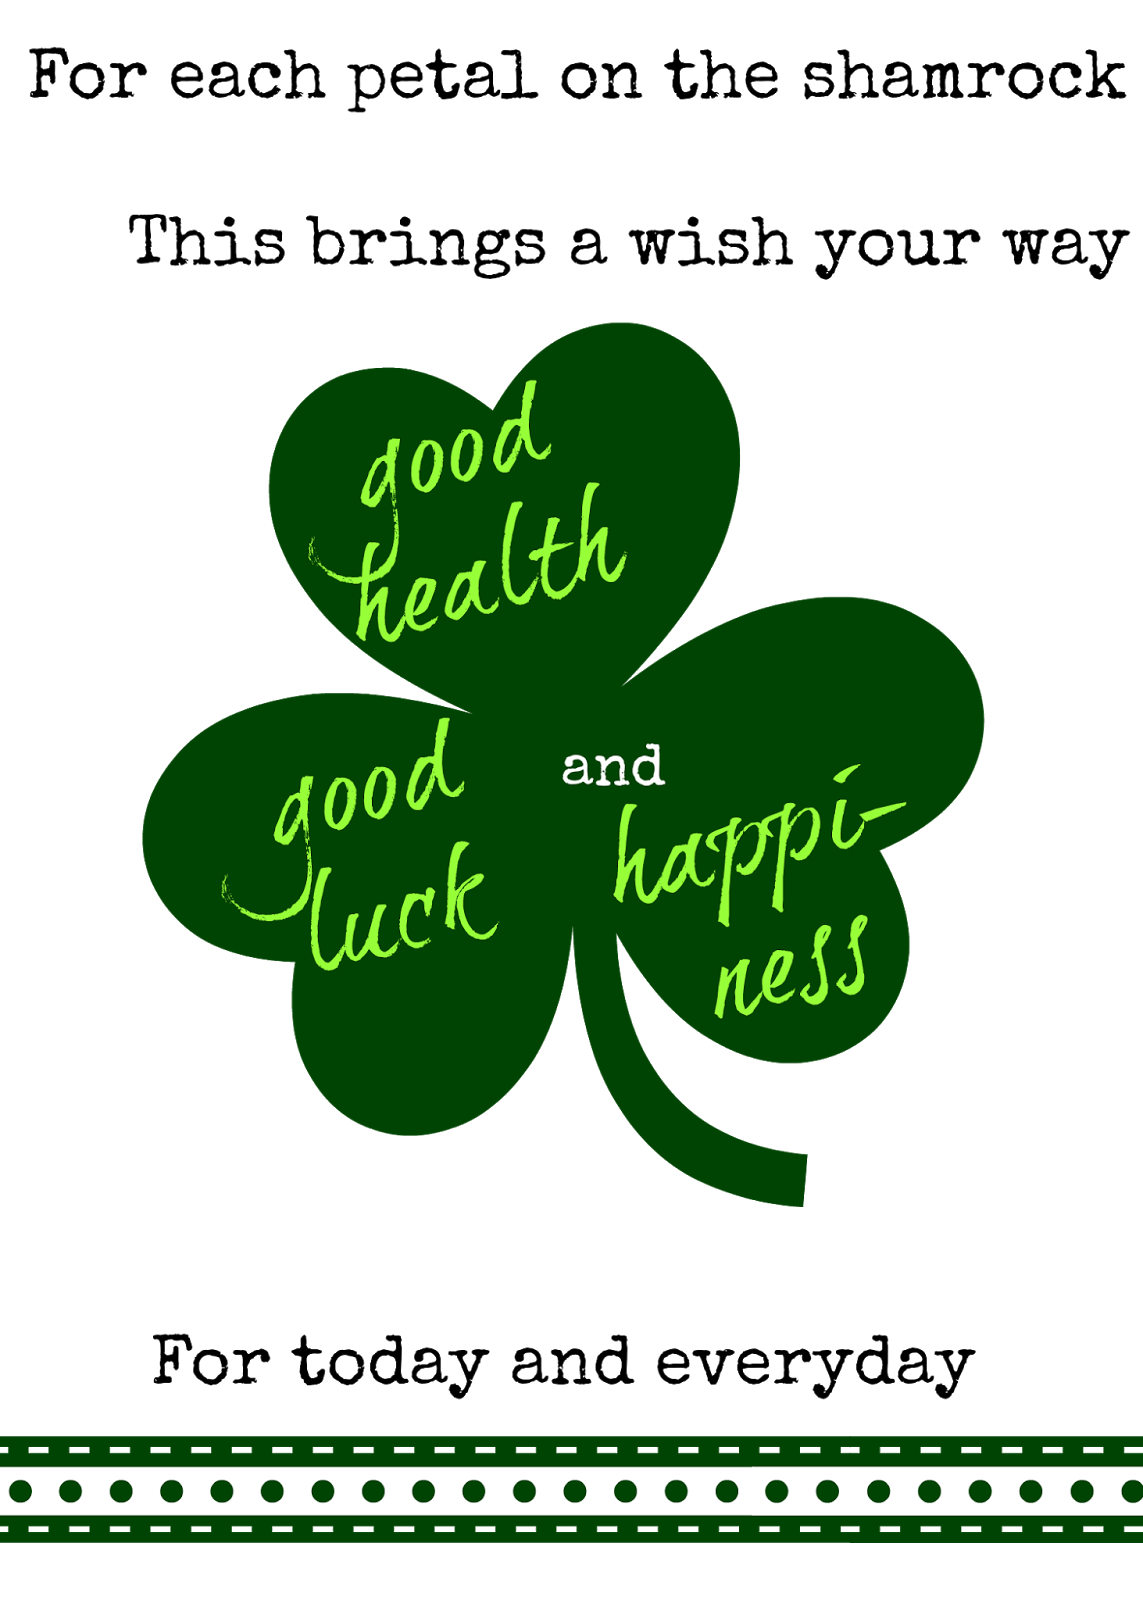 For ech Petal on the shamrock, This brings a Wish your way, Good Luck Good Health and Happiness, For today and Everyday